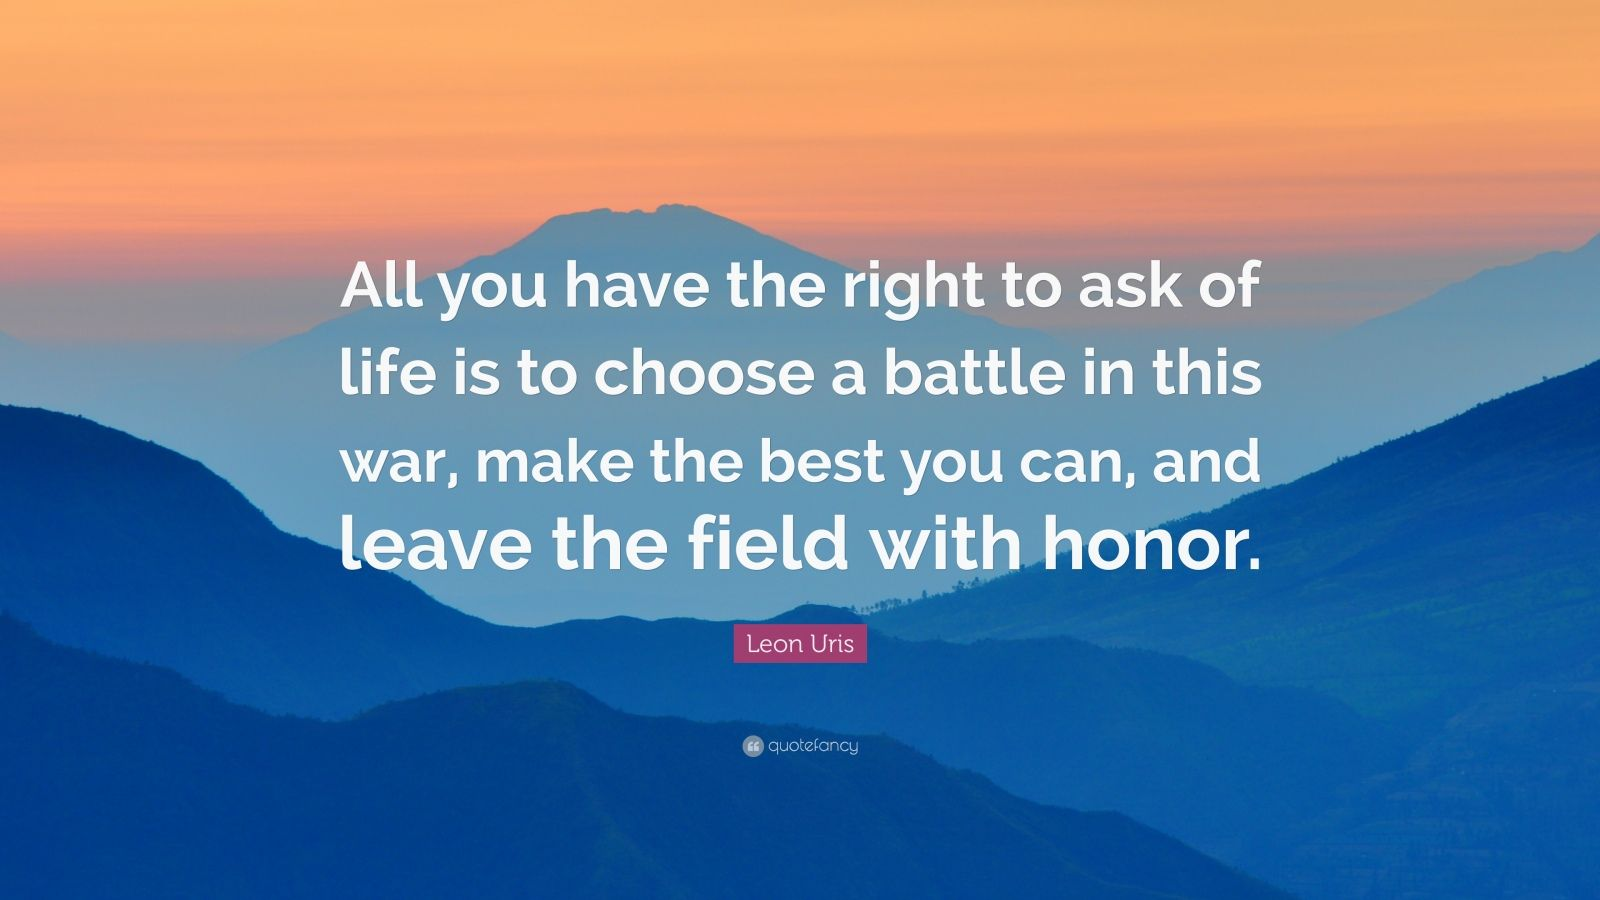 """Leon Uris Quote: """"All you have the right to ask of life is to choose a battle in this war, make the best you can, and leave the field with honor."""""""